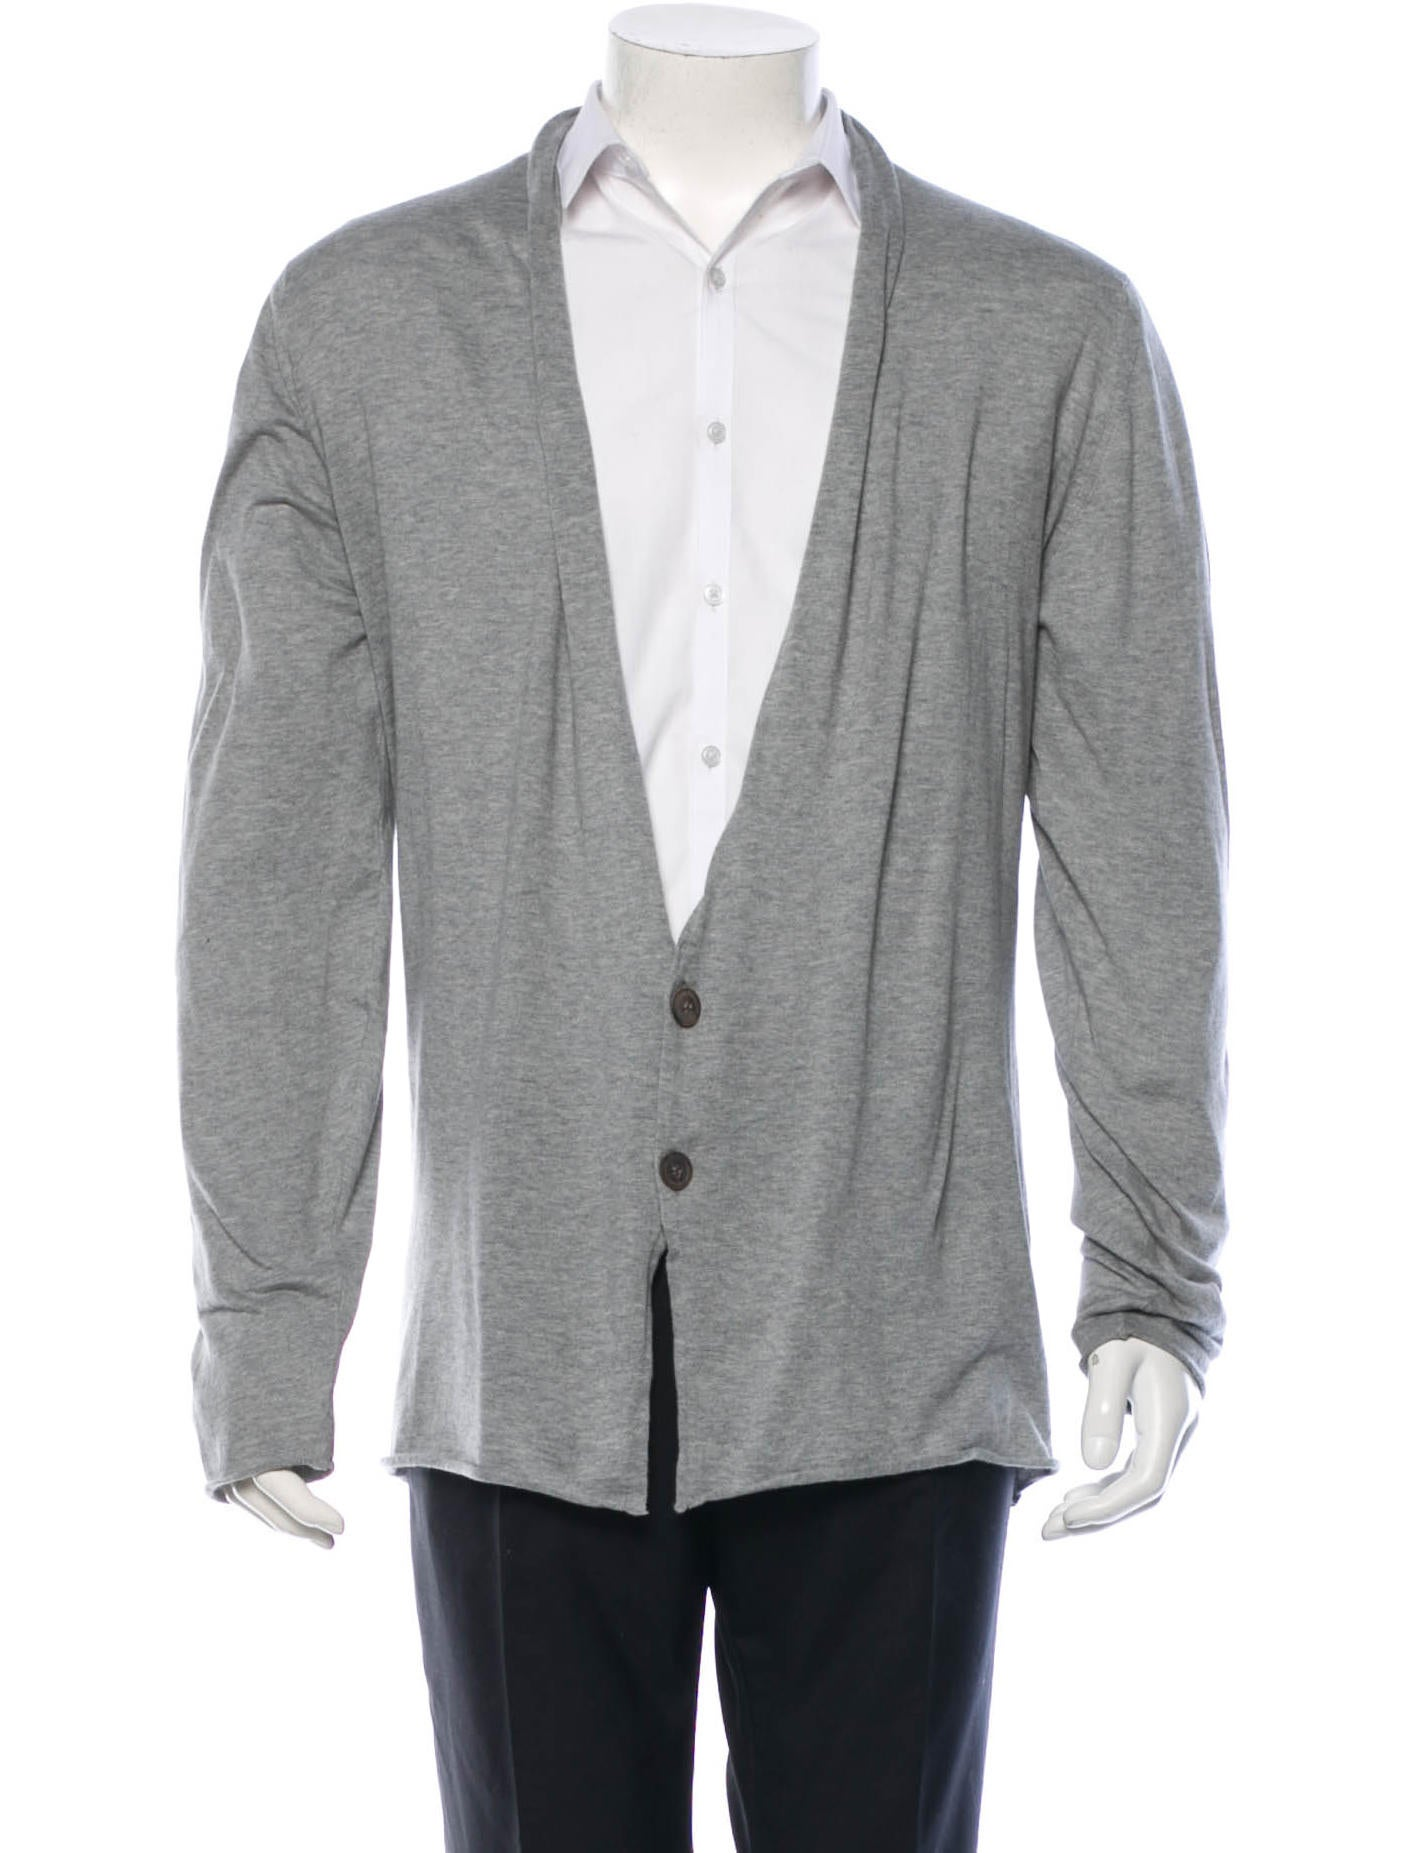 paul smith cardigan clothing wps21251 the realreal